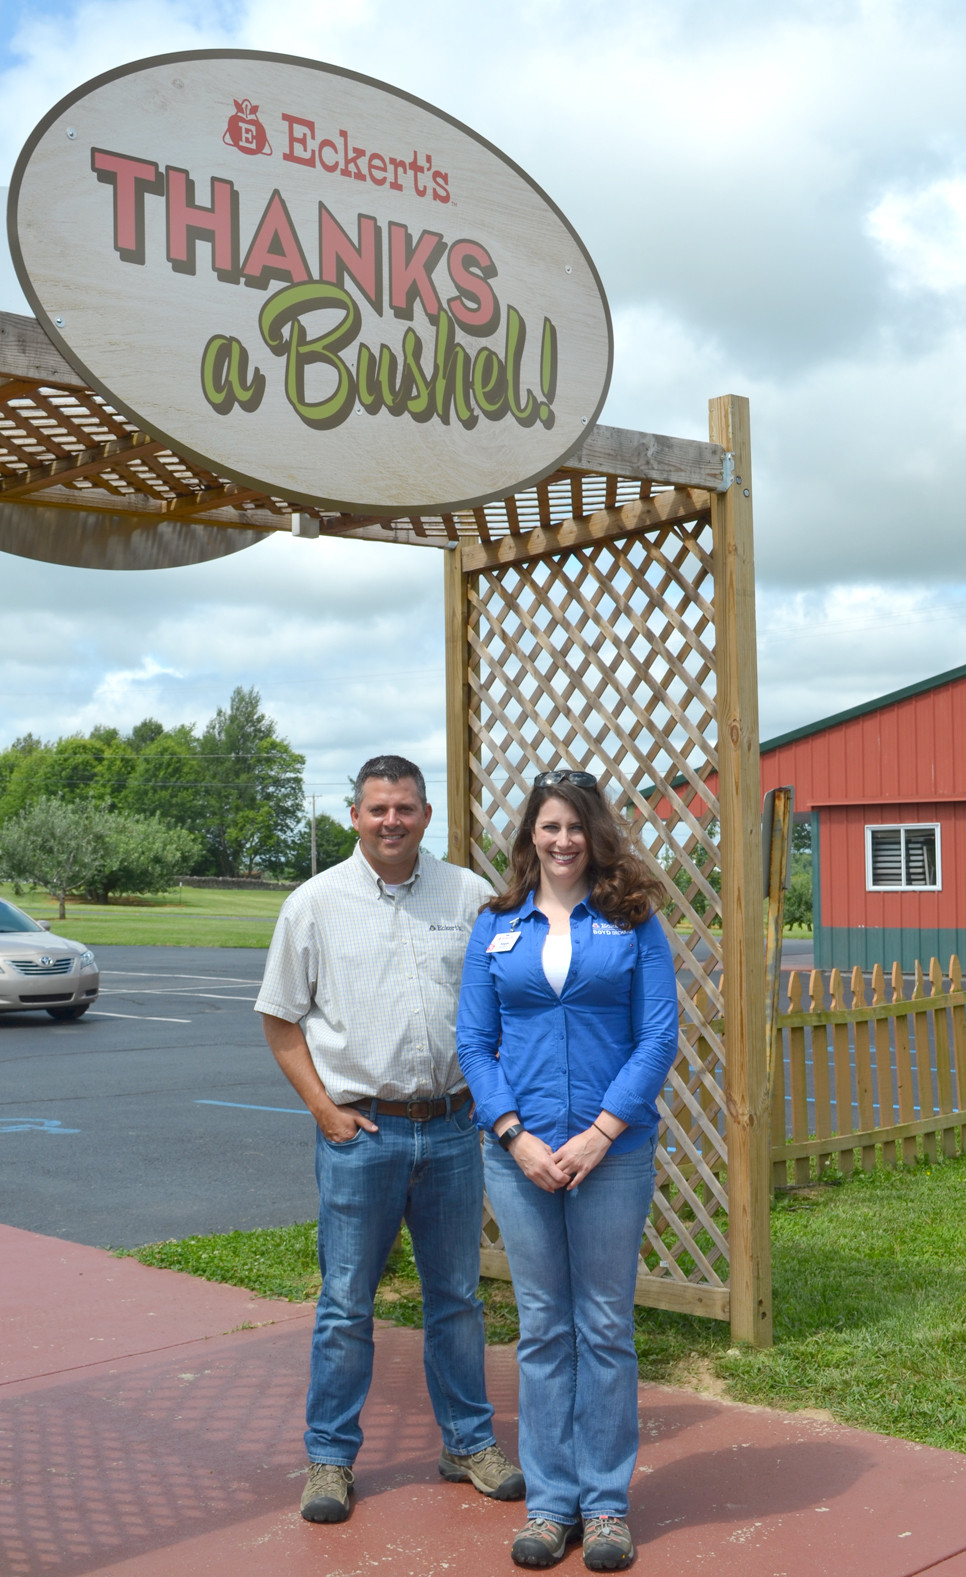 """CHRIS ECKERT and Megan Fields, the general manager of Eckert's Boyd Orchard, said some changes are planned for the agri-business, formerly owned by Terry and Susie Boyd. """"Our guests have come in and enjoyed seeing the changes in the market,"""" said Fields. """"...They're excited about pick-your-own peaches ... something new that we're doing now."""" (Photo by Bob Vlach)"""